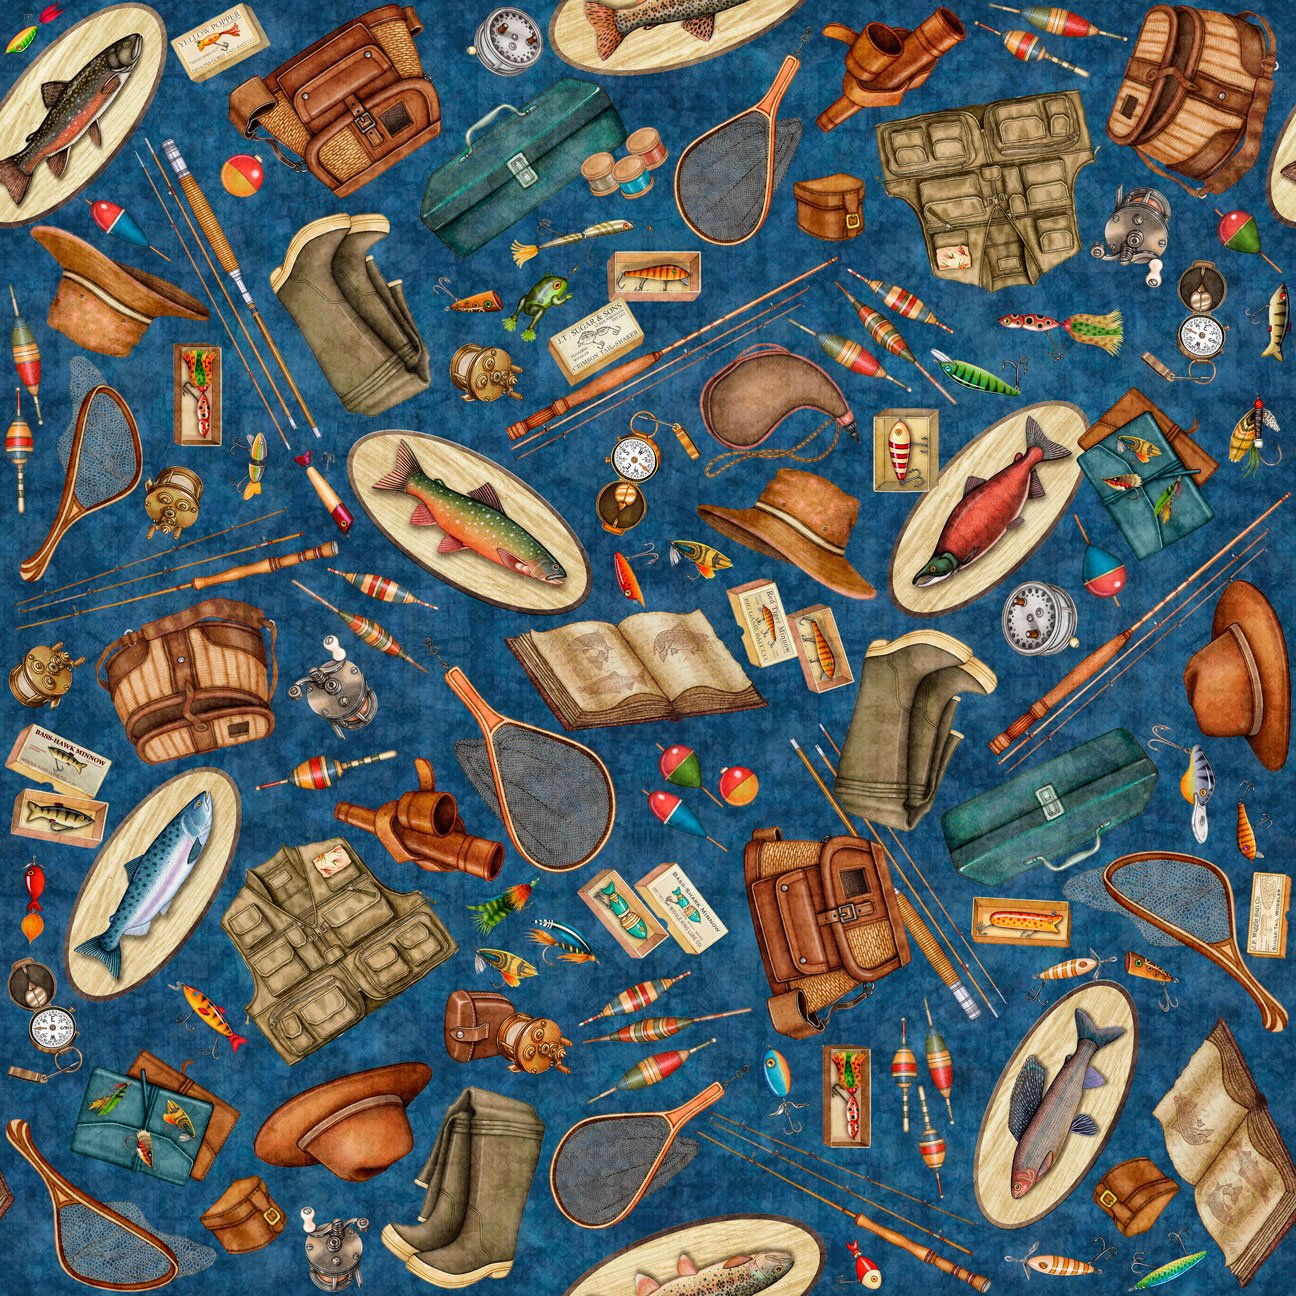 Fishing gear such as the reel, tackle box, waders, wicker basket on a blue background fabric available at Colorado Creations Quilting